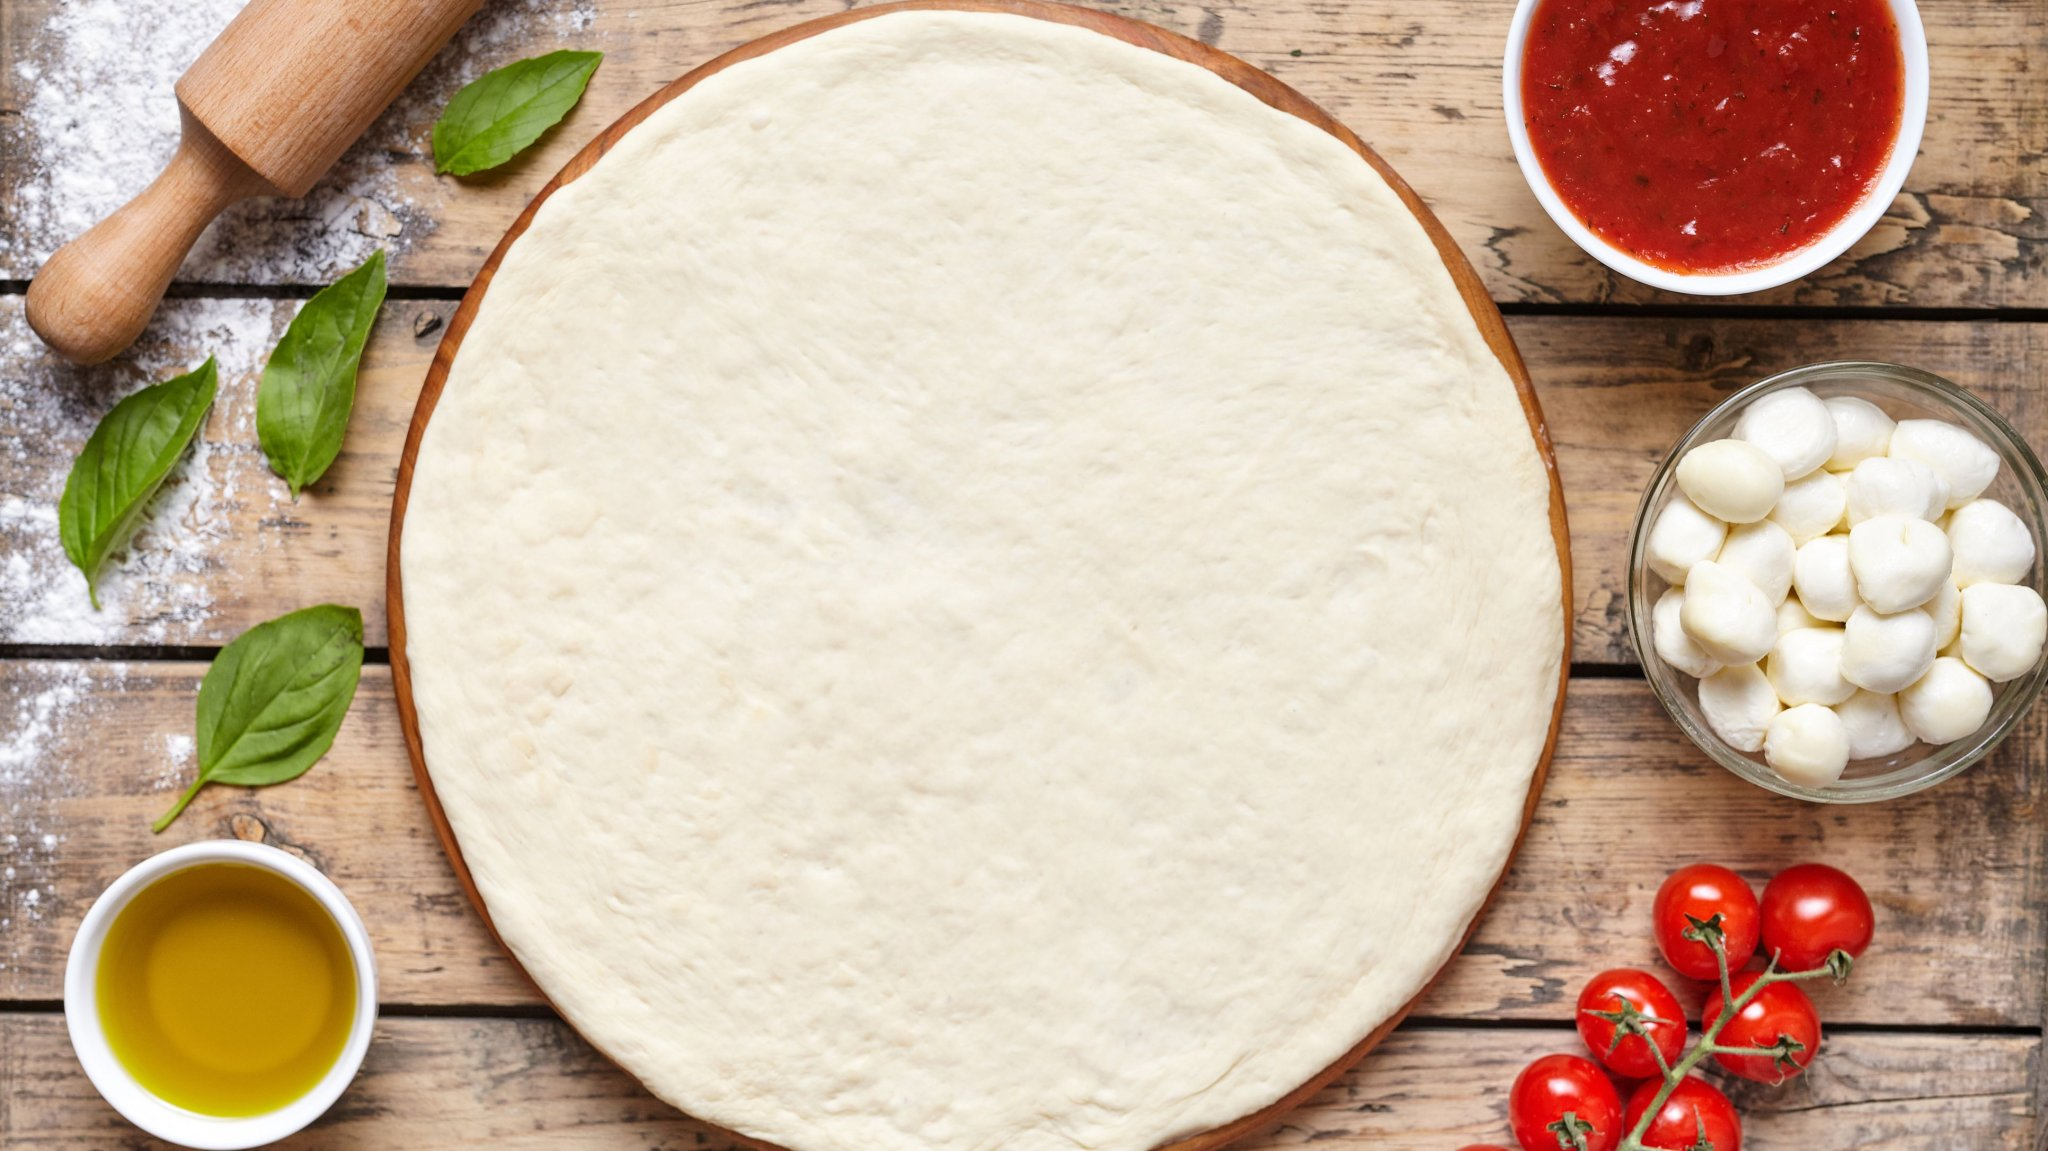 This Amazing Pizza Dough Recipe Has Just Three Ingredients, No Kneading Required